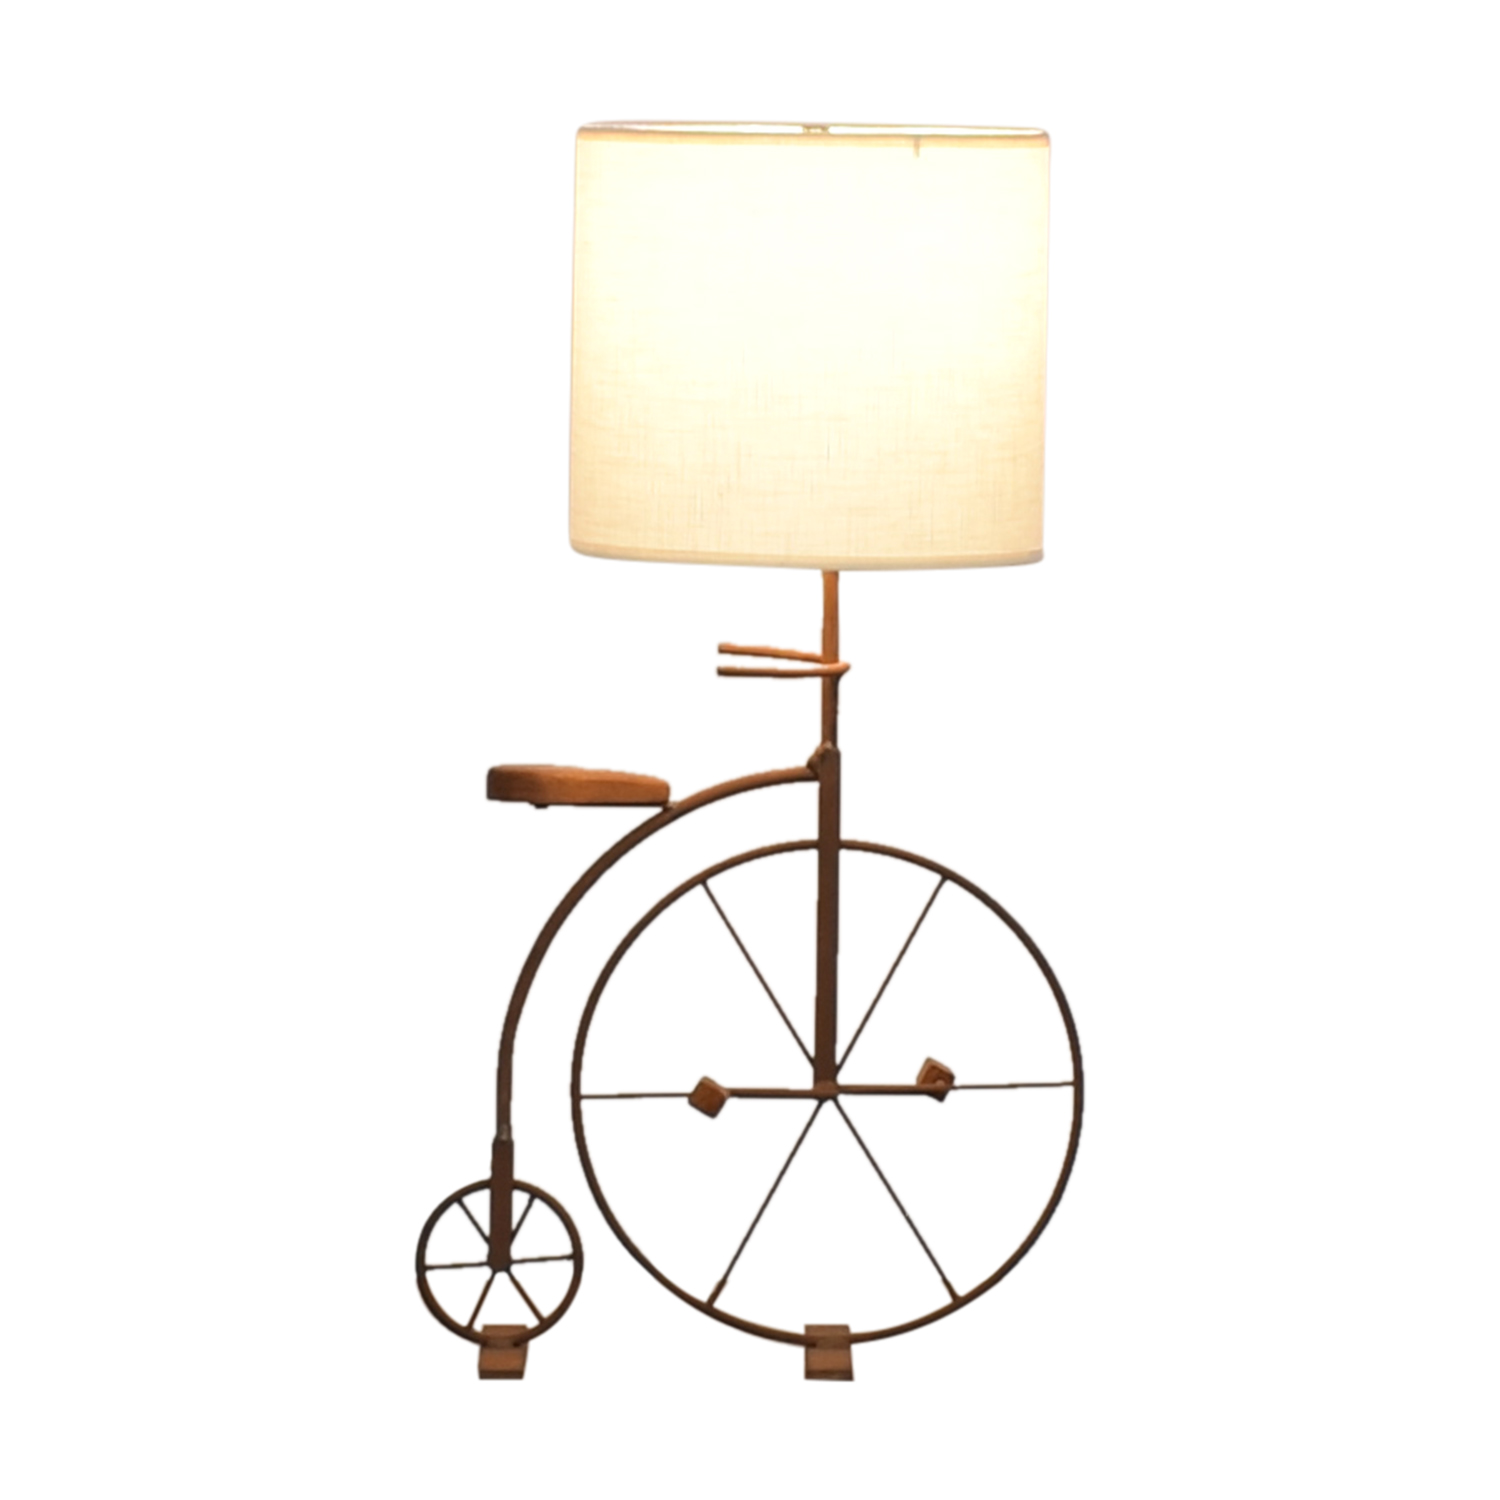 shop ABC Carpet & Home Bicycle Lamp ABC Carpet & Home Decor